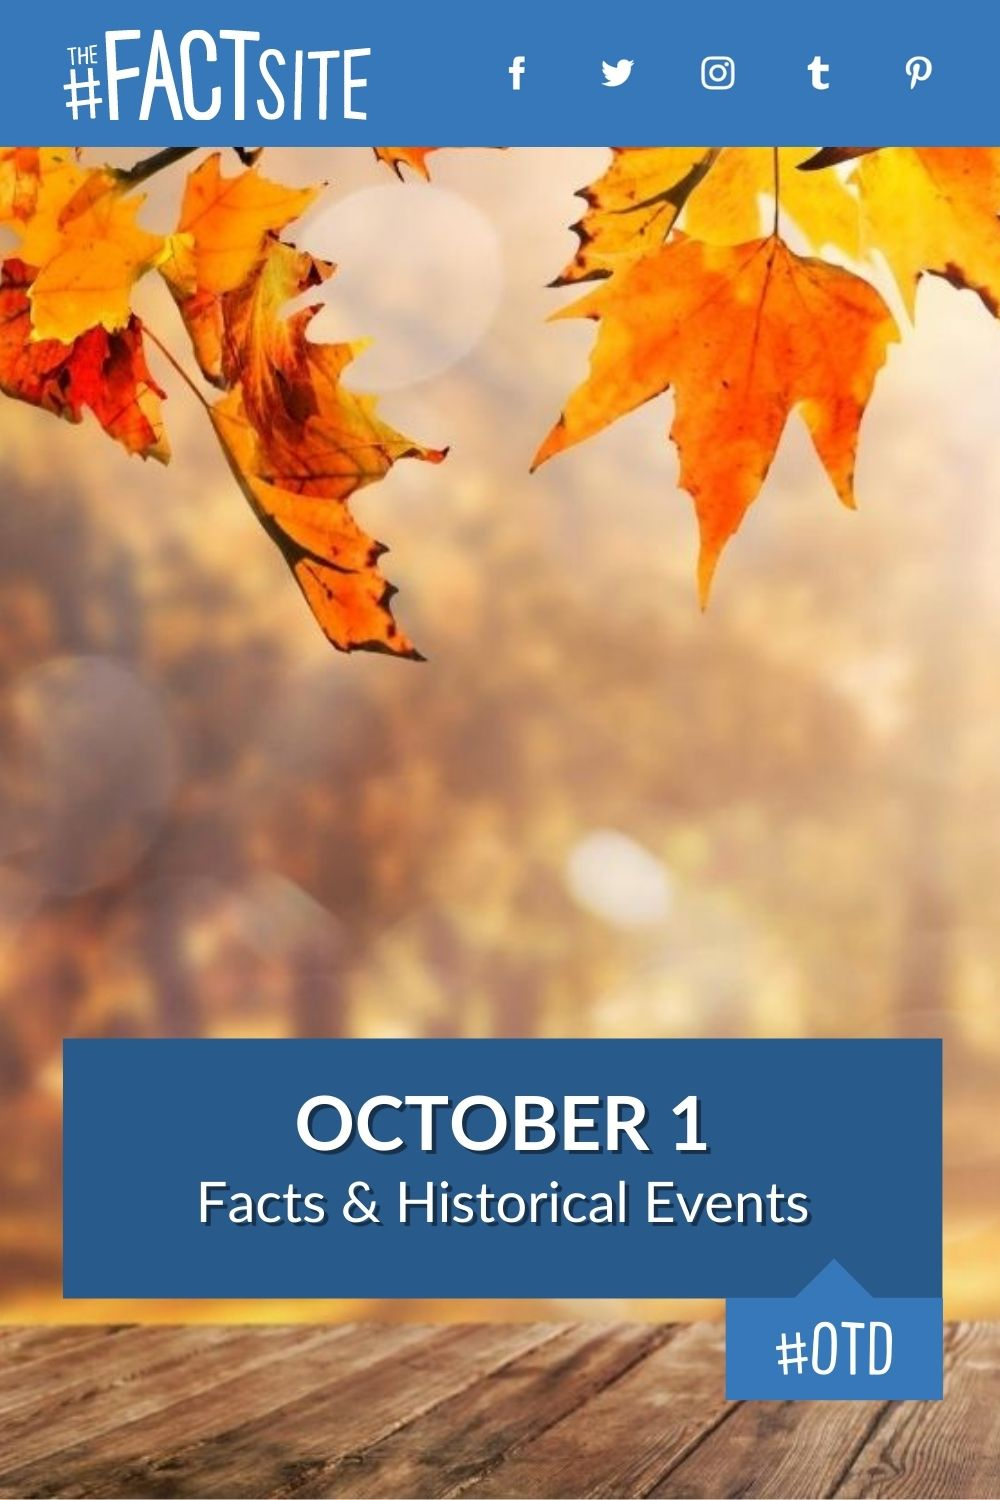 Facts & Historic Events That Happened on October 1